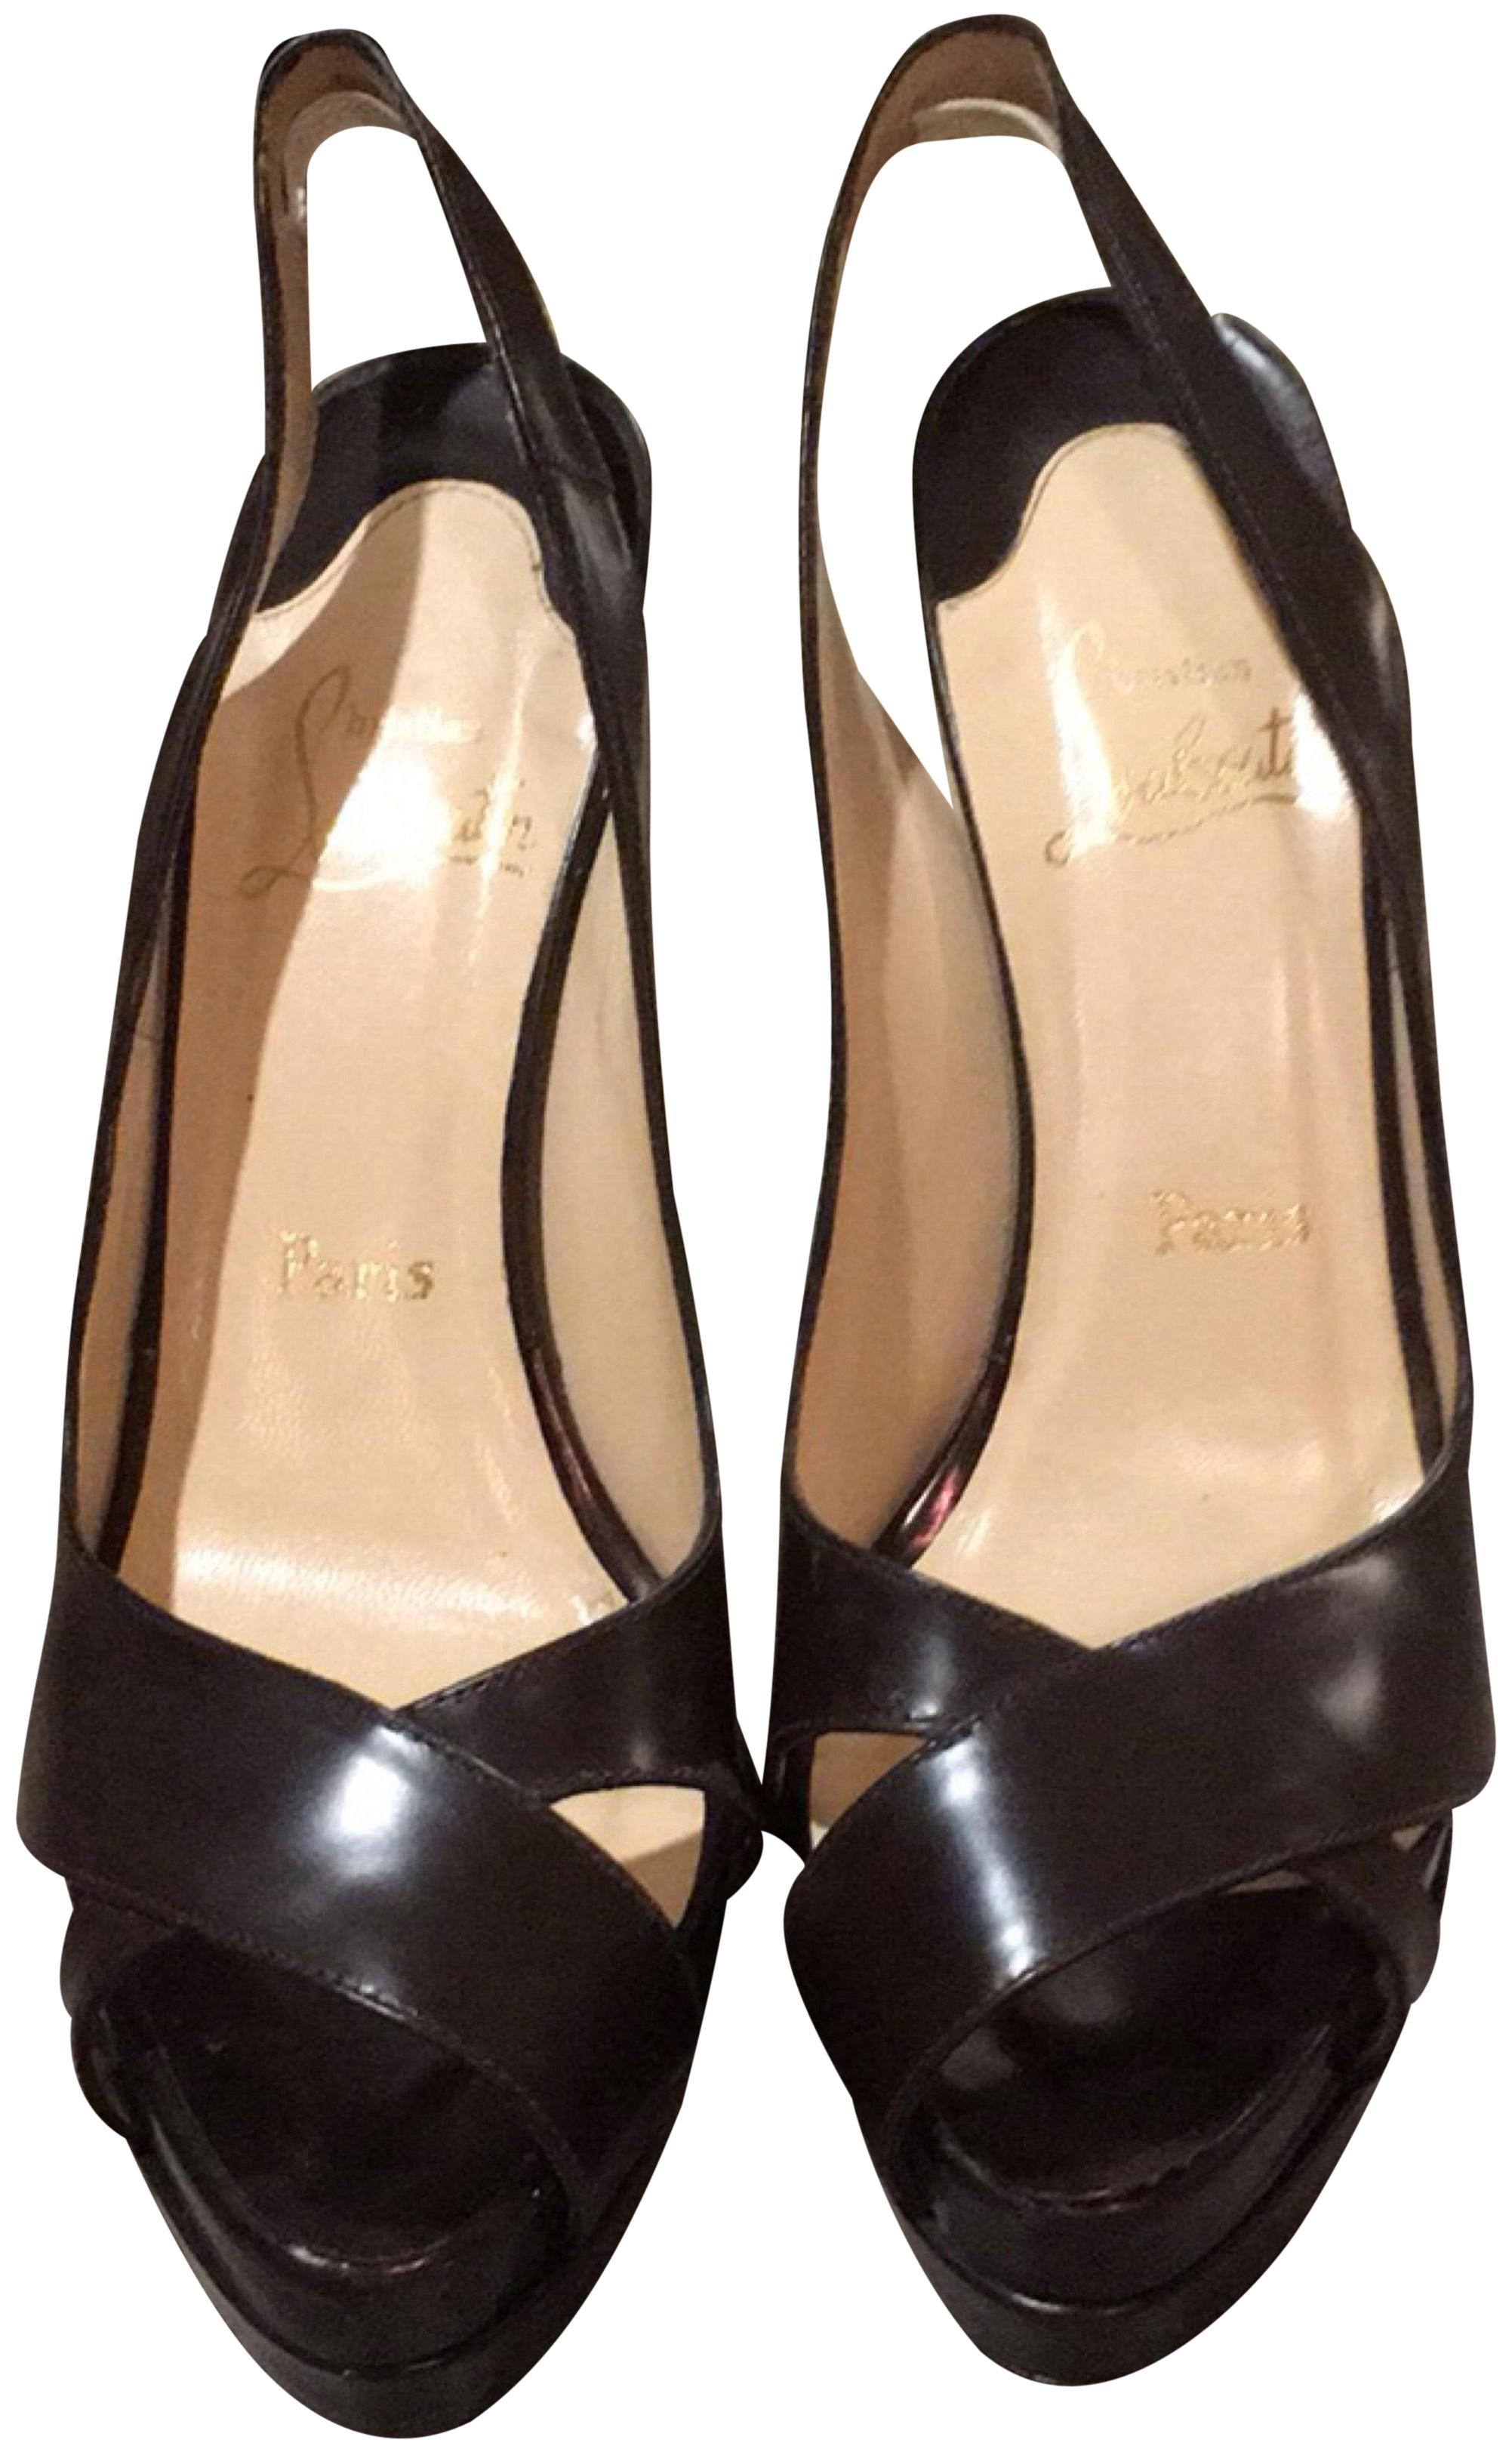 Christian Louboutin Brown Sandals Platforms Size EU 40.5 (Approx. US 10.5) Regular (M, B)